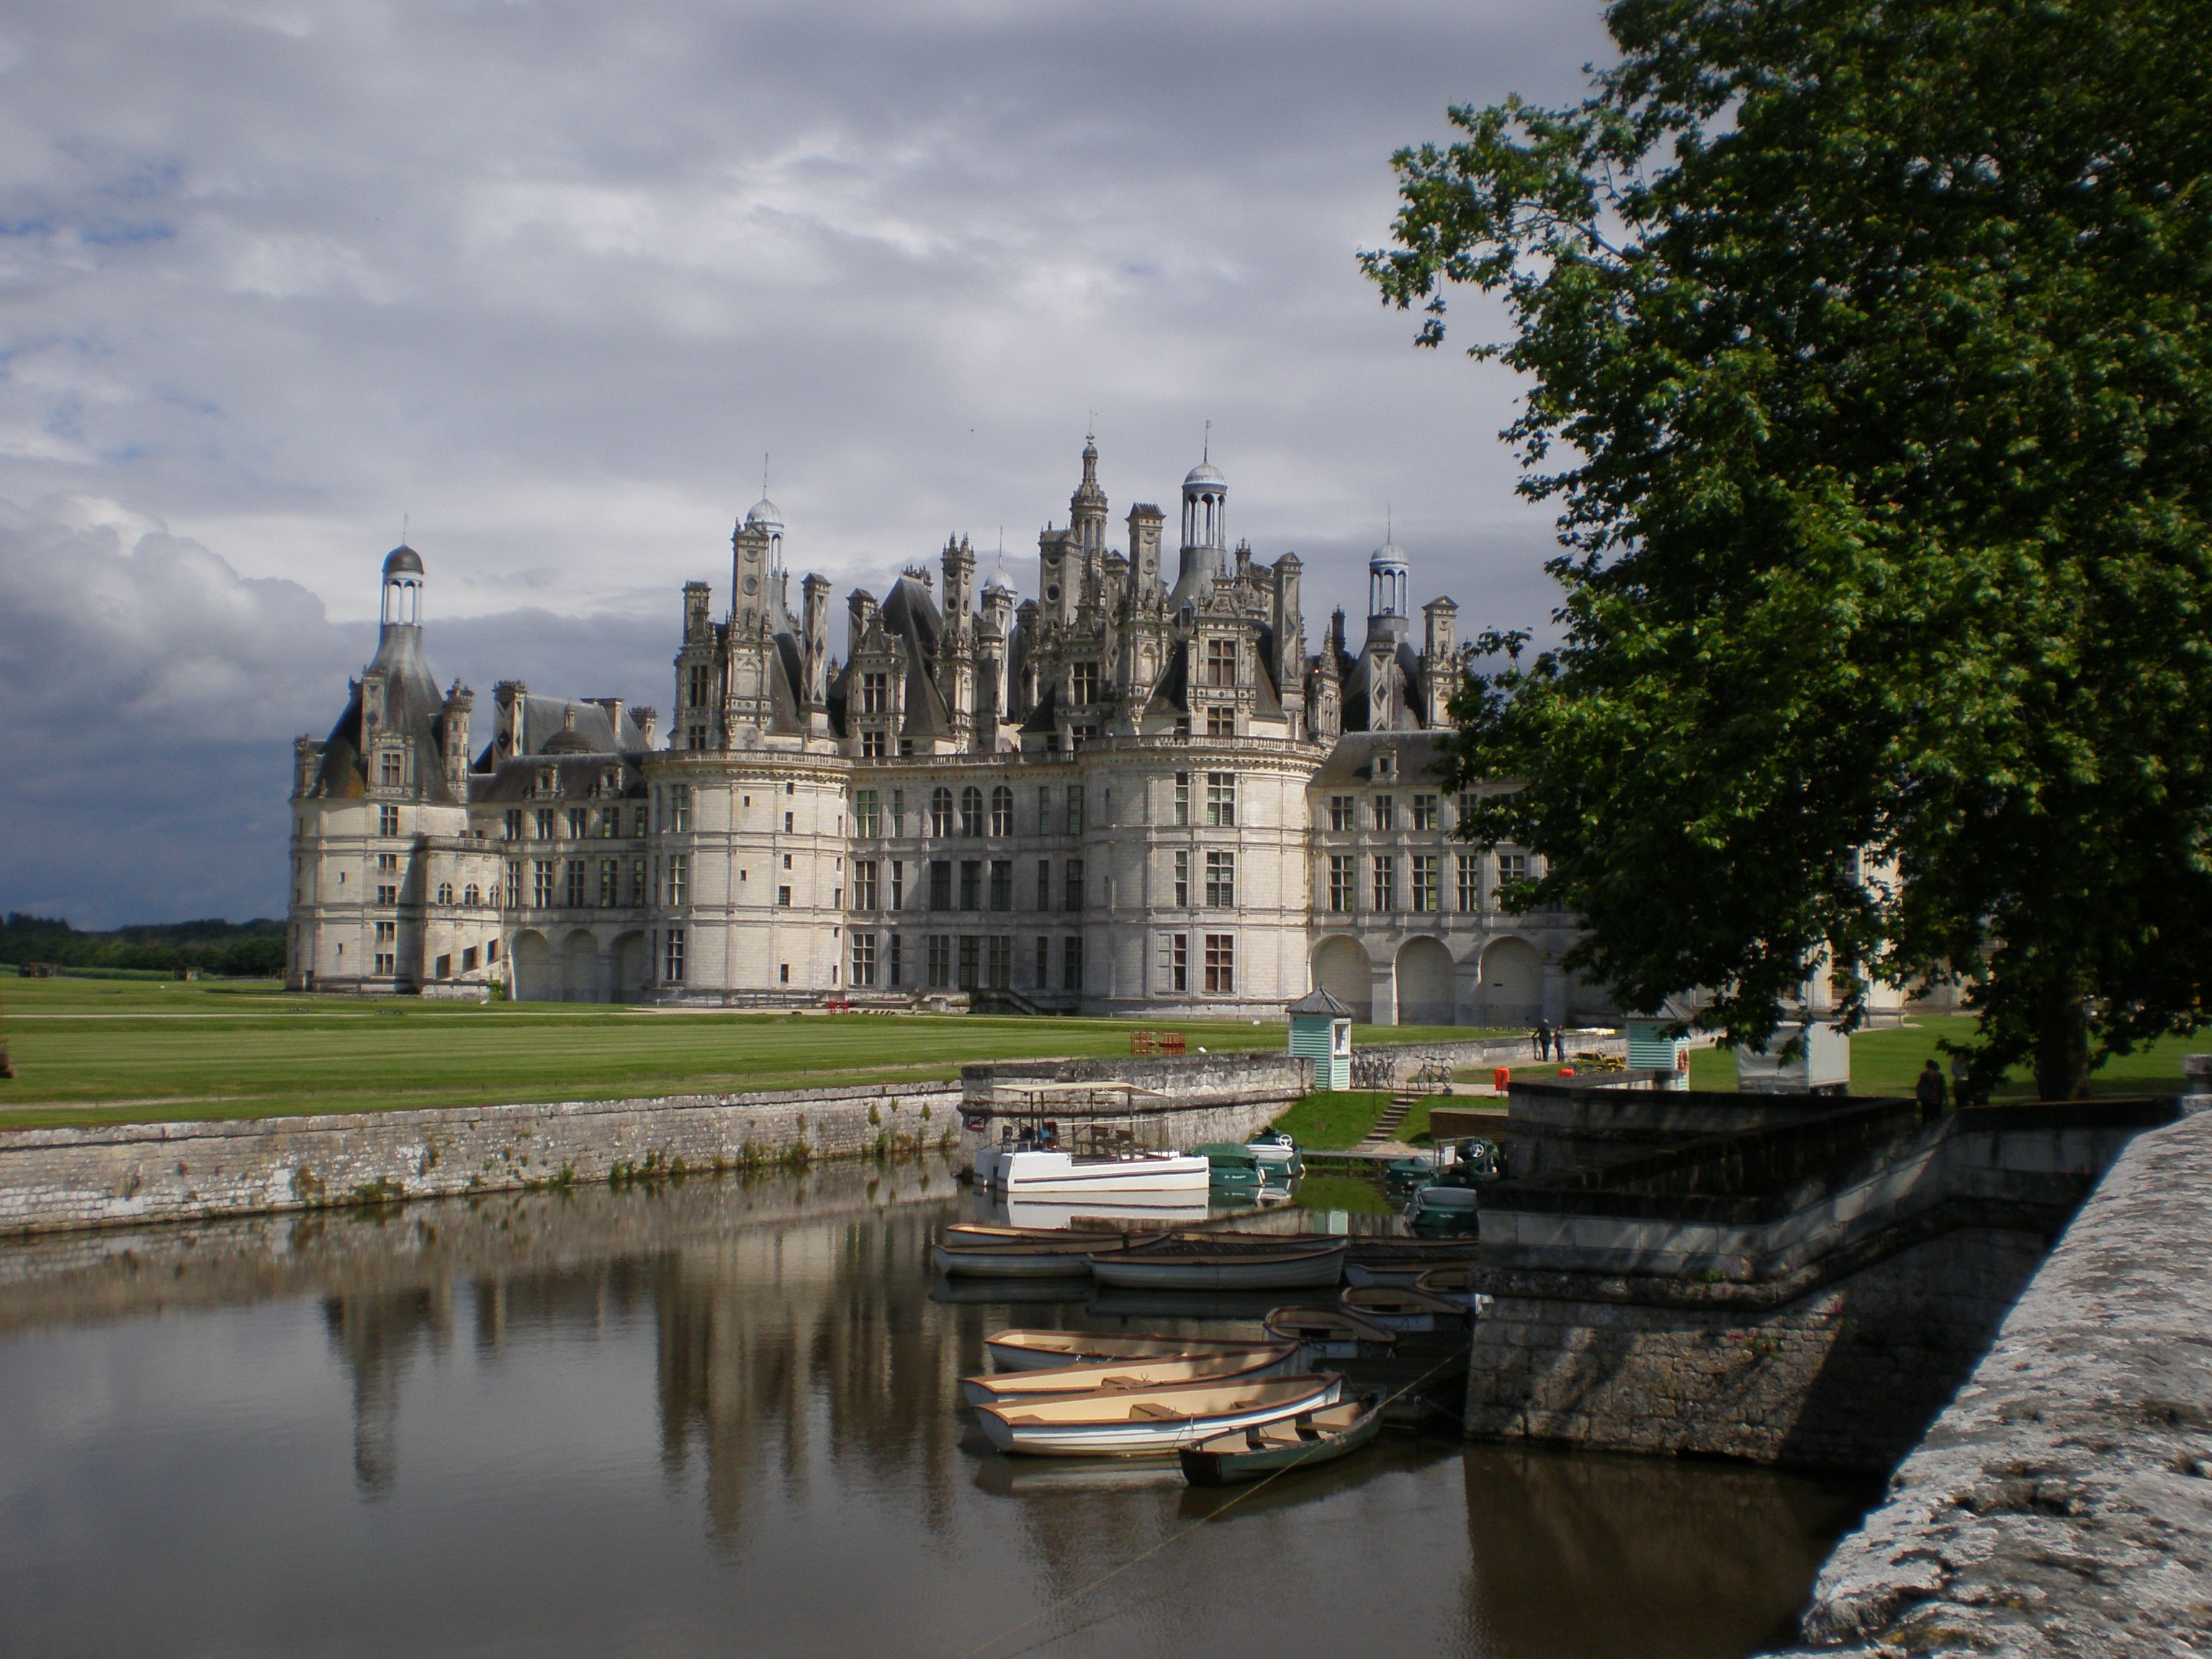 The Chateau of Chambord in the Loire Valley